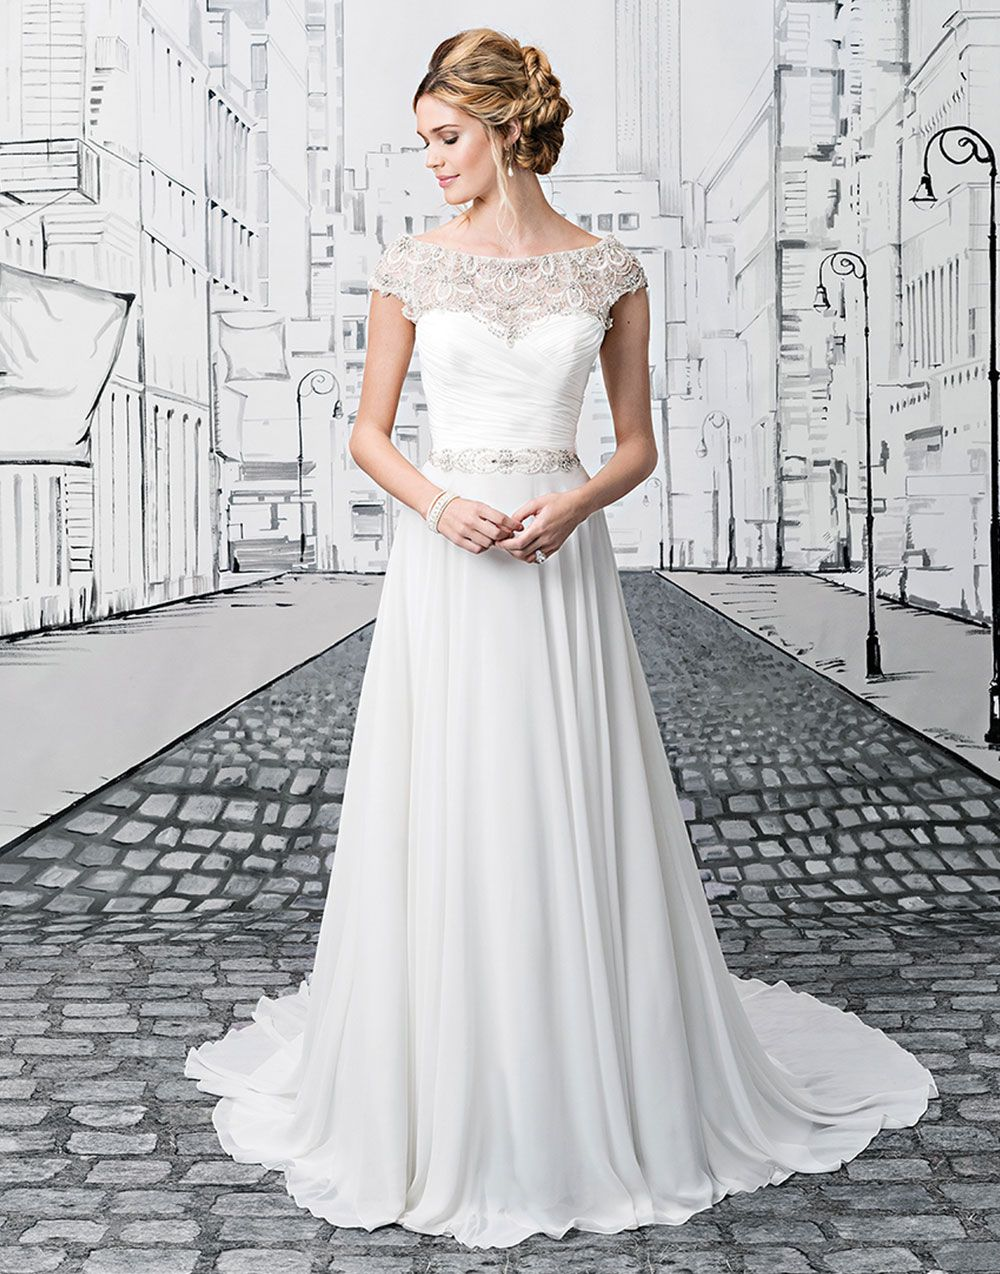 6a4ee5924e9 Justin Alexander wedding dresses style 8799 Beaded embroidery and chiffon  ball gown with a portrait neckline